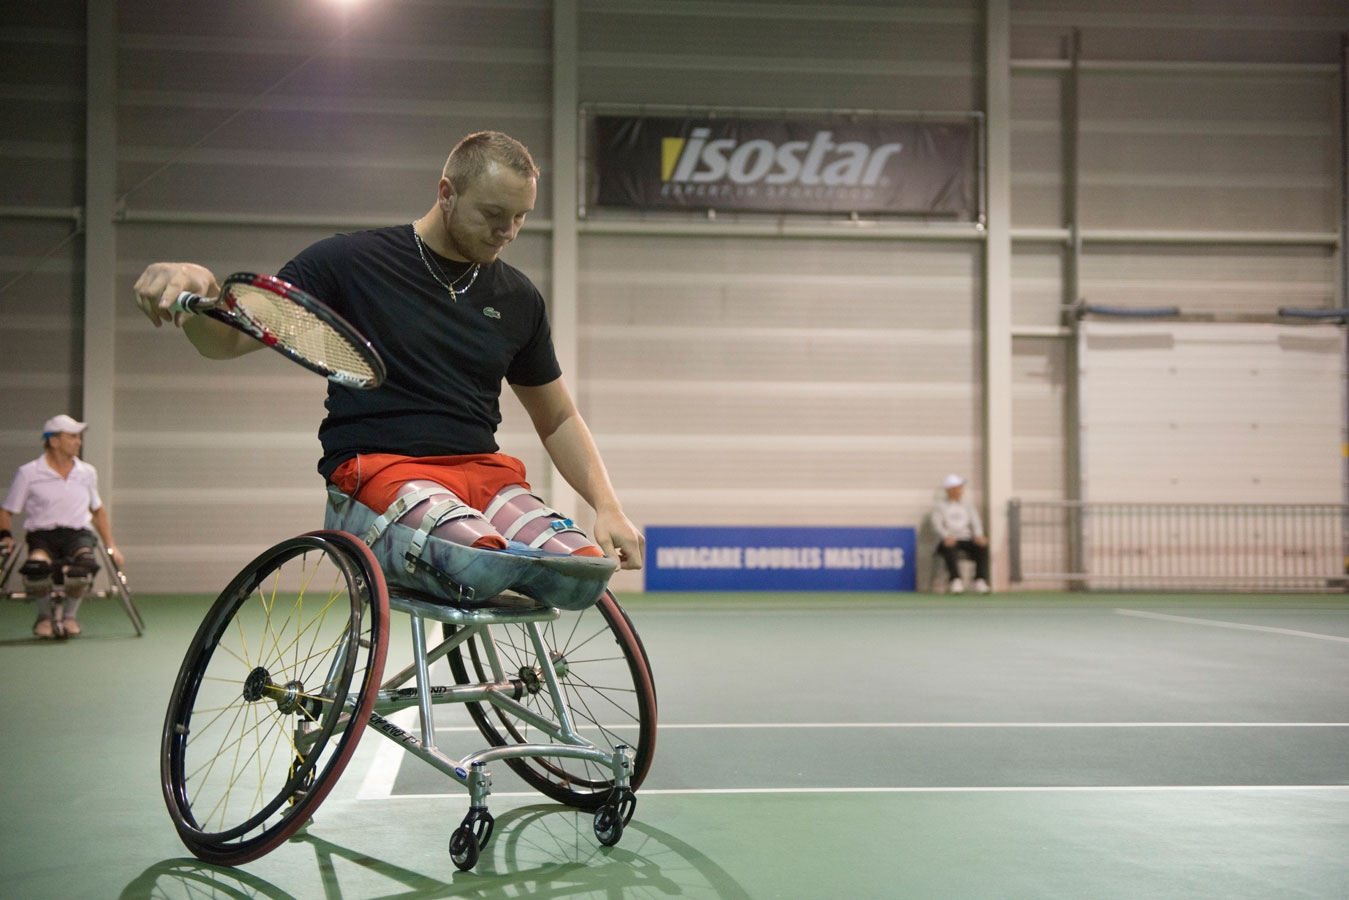 <p>A competitor at the Invacare Doubles Tennis Tournament in Amsterdam, 2012</p>